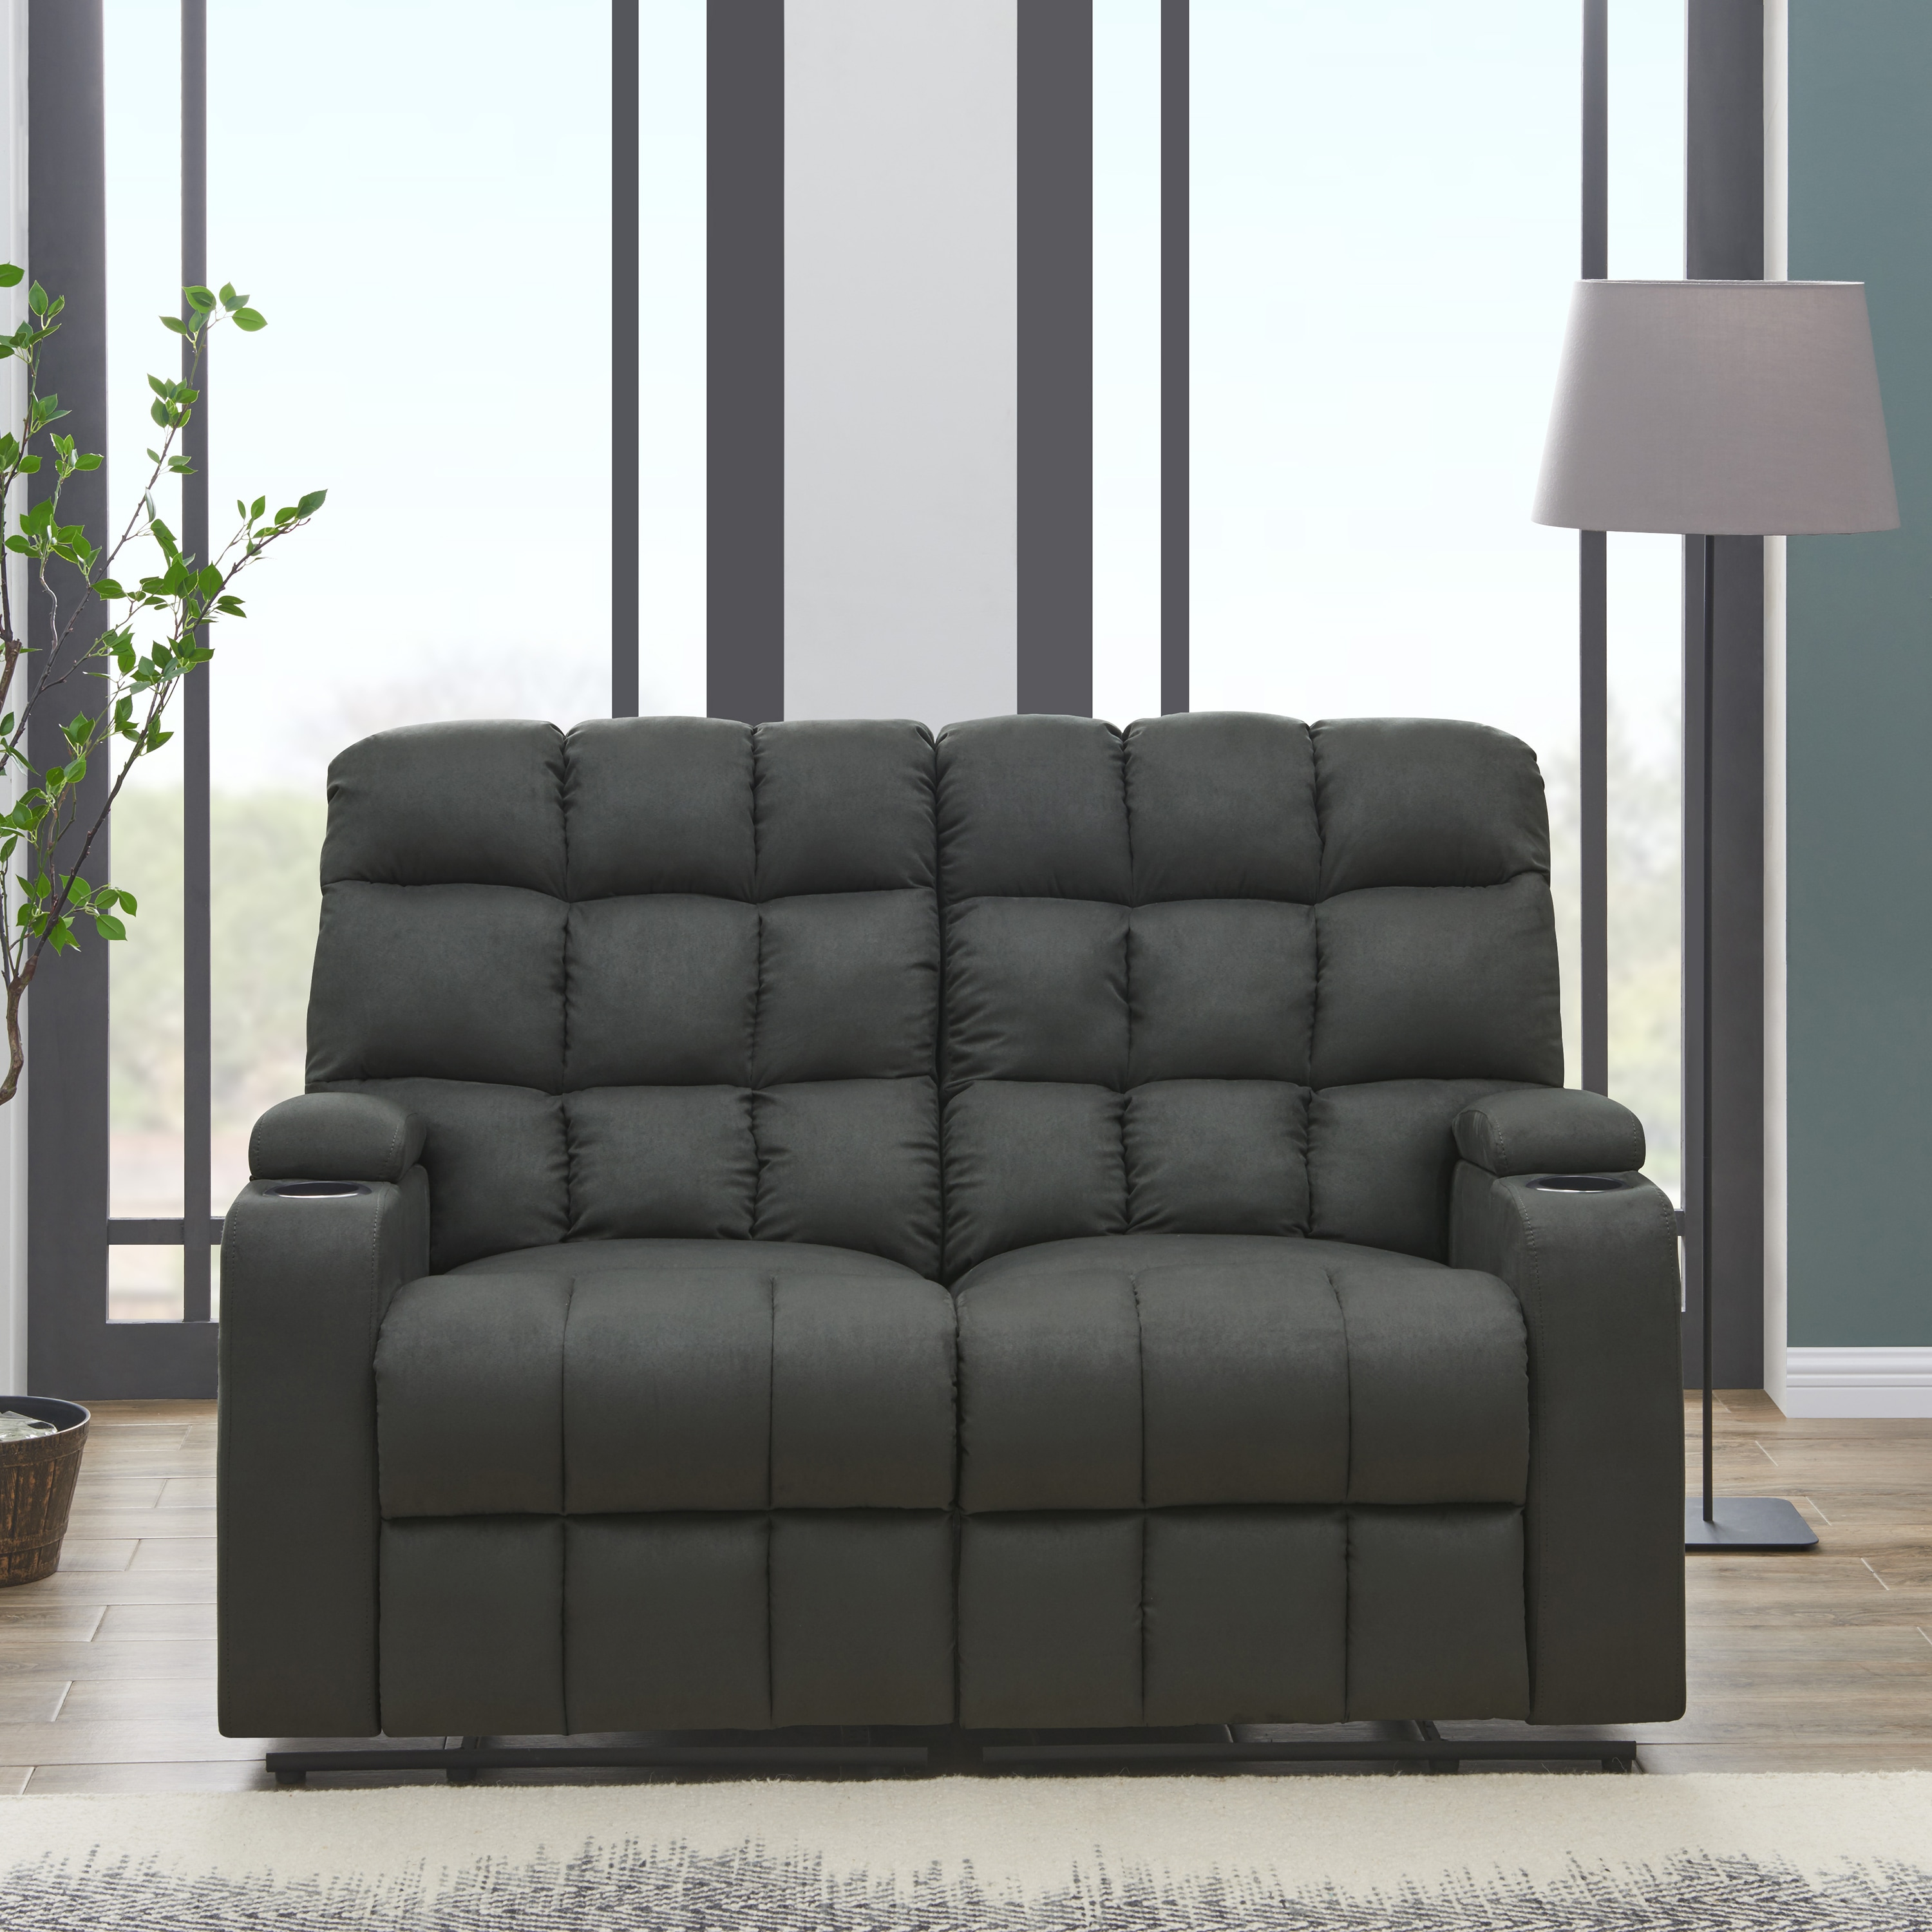 Sofa For Sale Online Buy Loveseats Online At Overstock Our Best Living Room Furniture